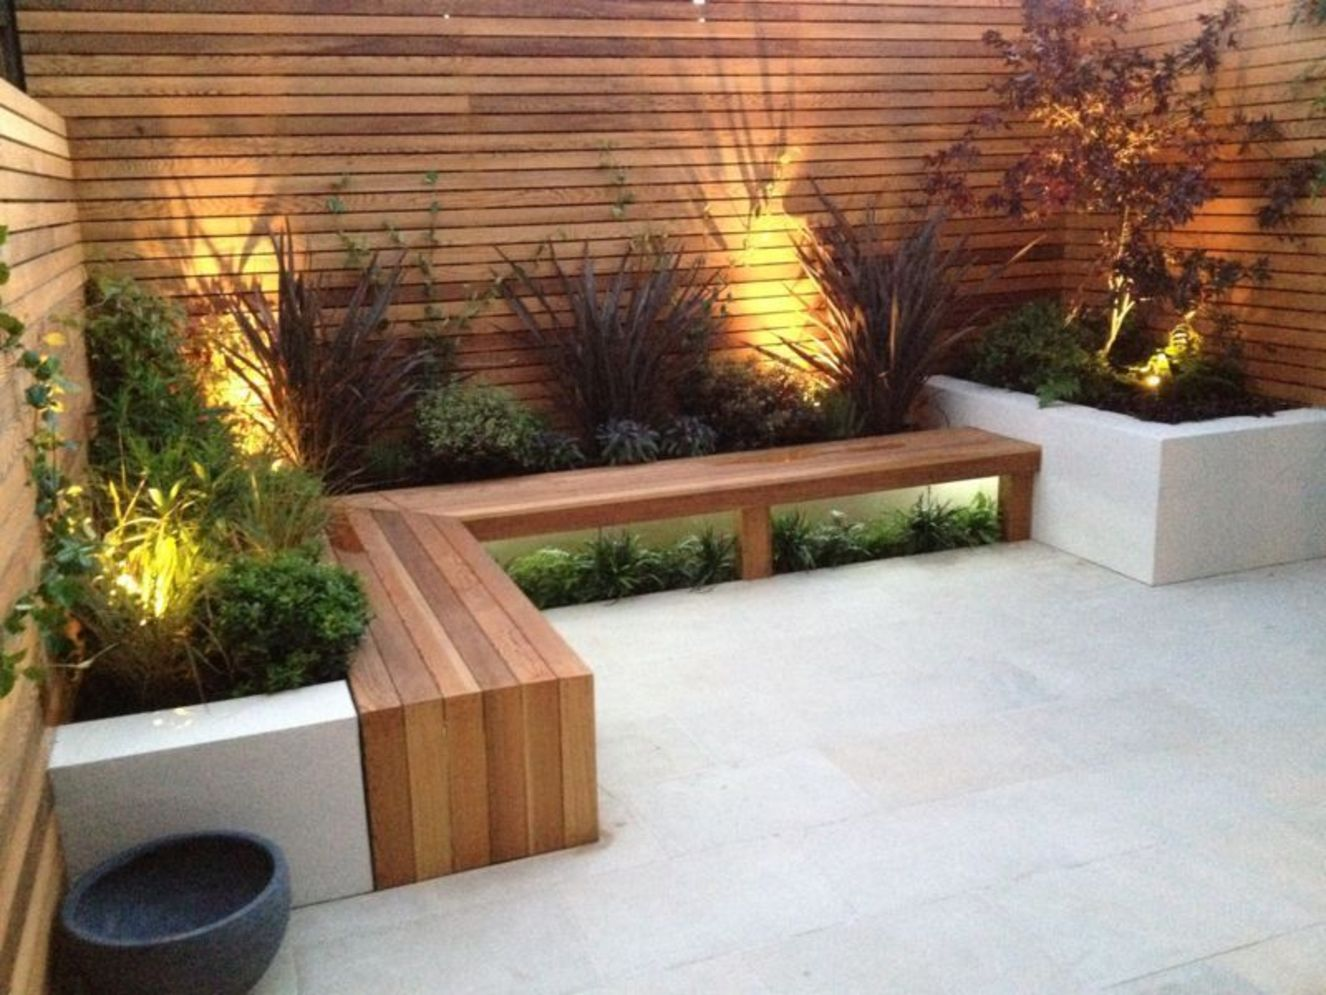 Lavish garden upgrade showing beautiful outdoor light schemes that liven up the landscape view Image 38